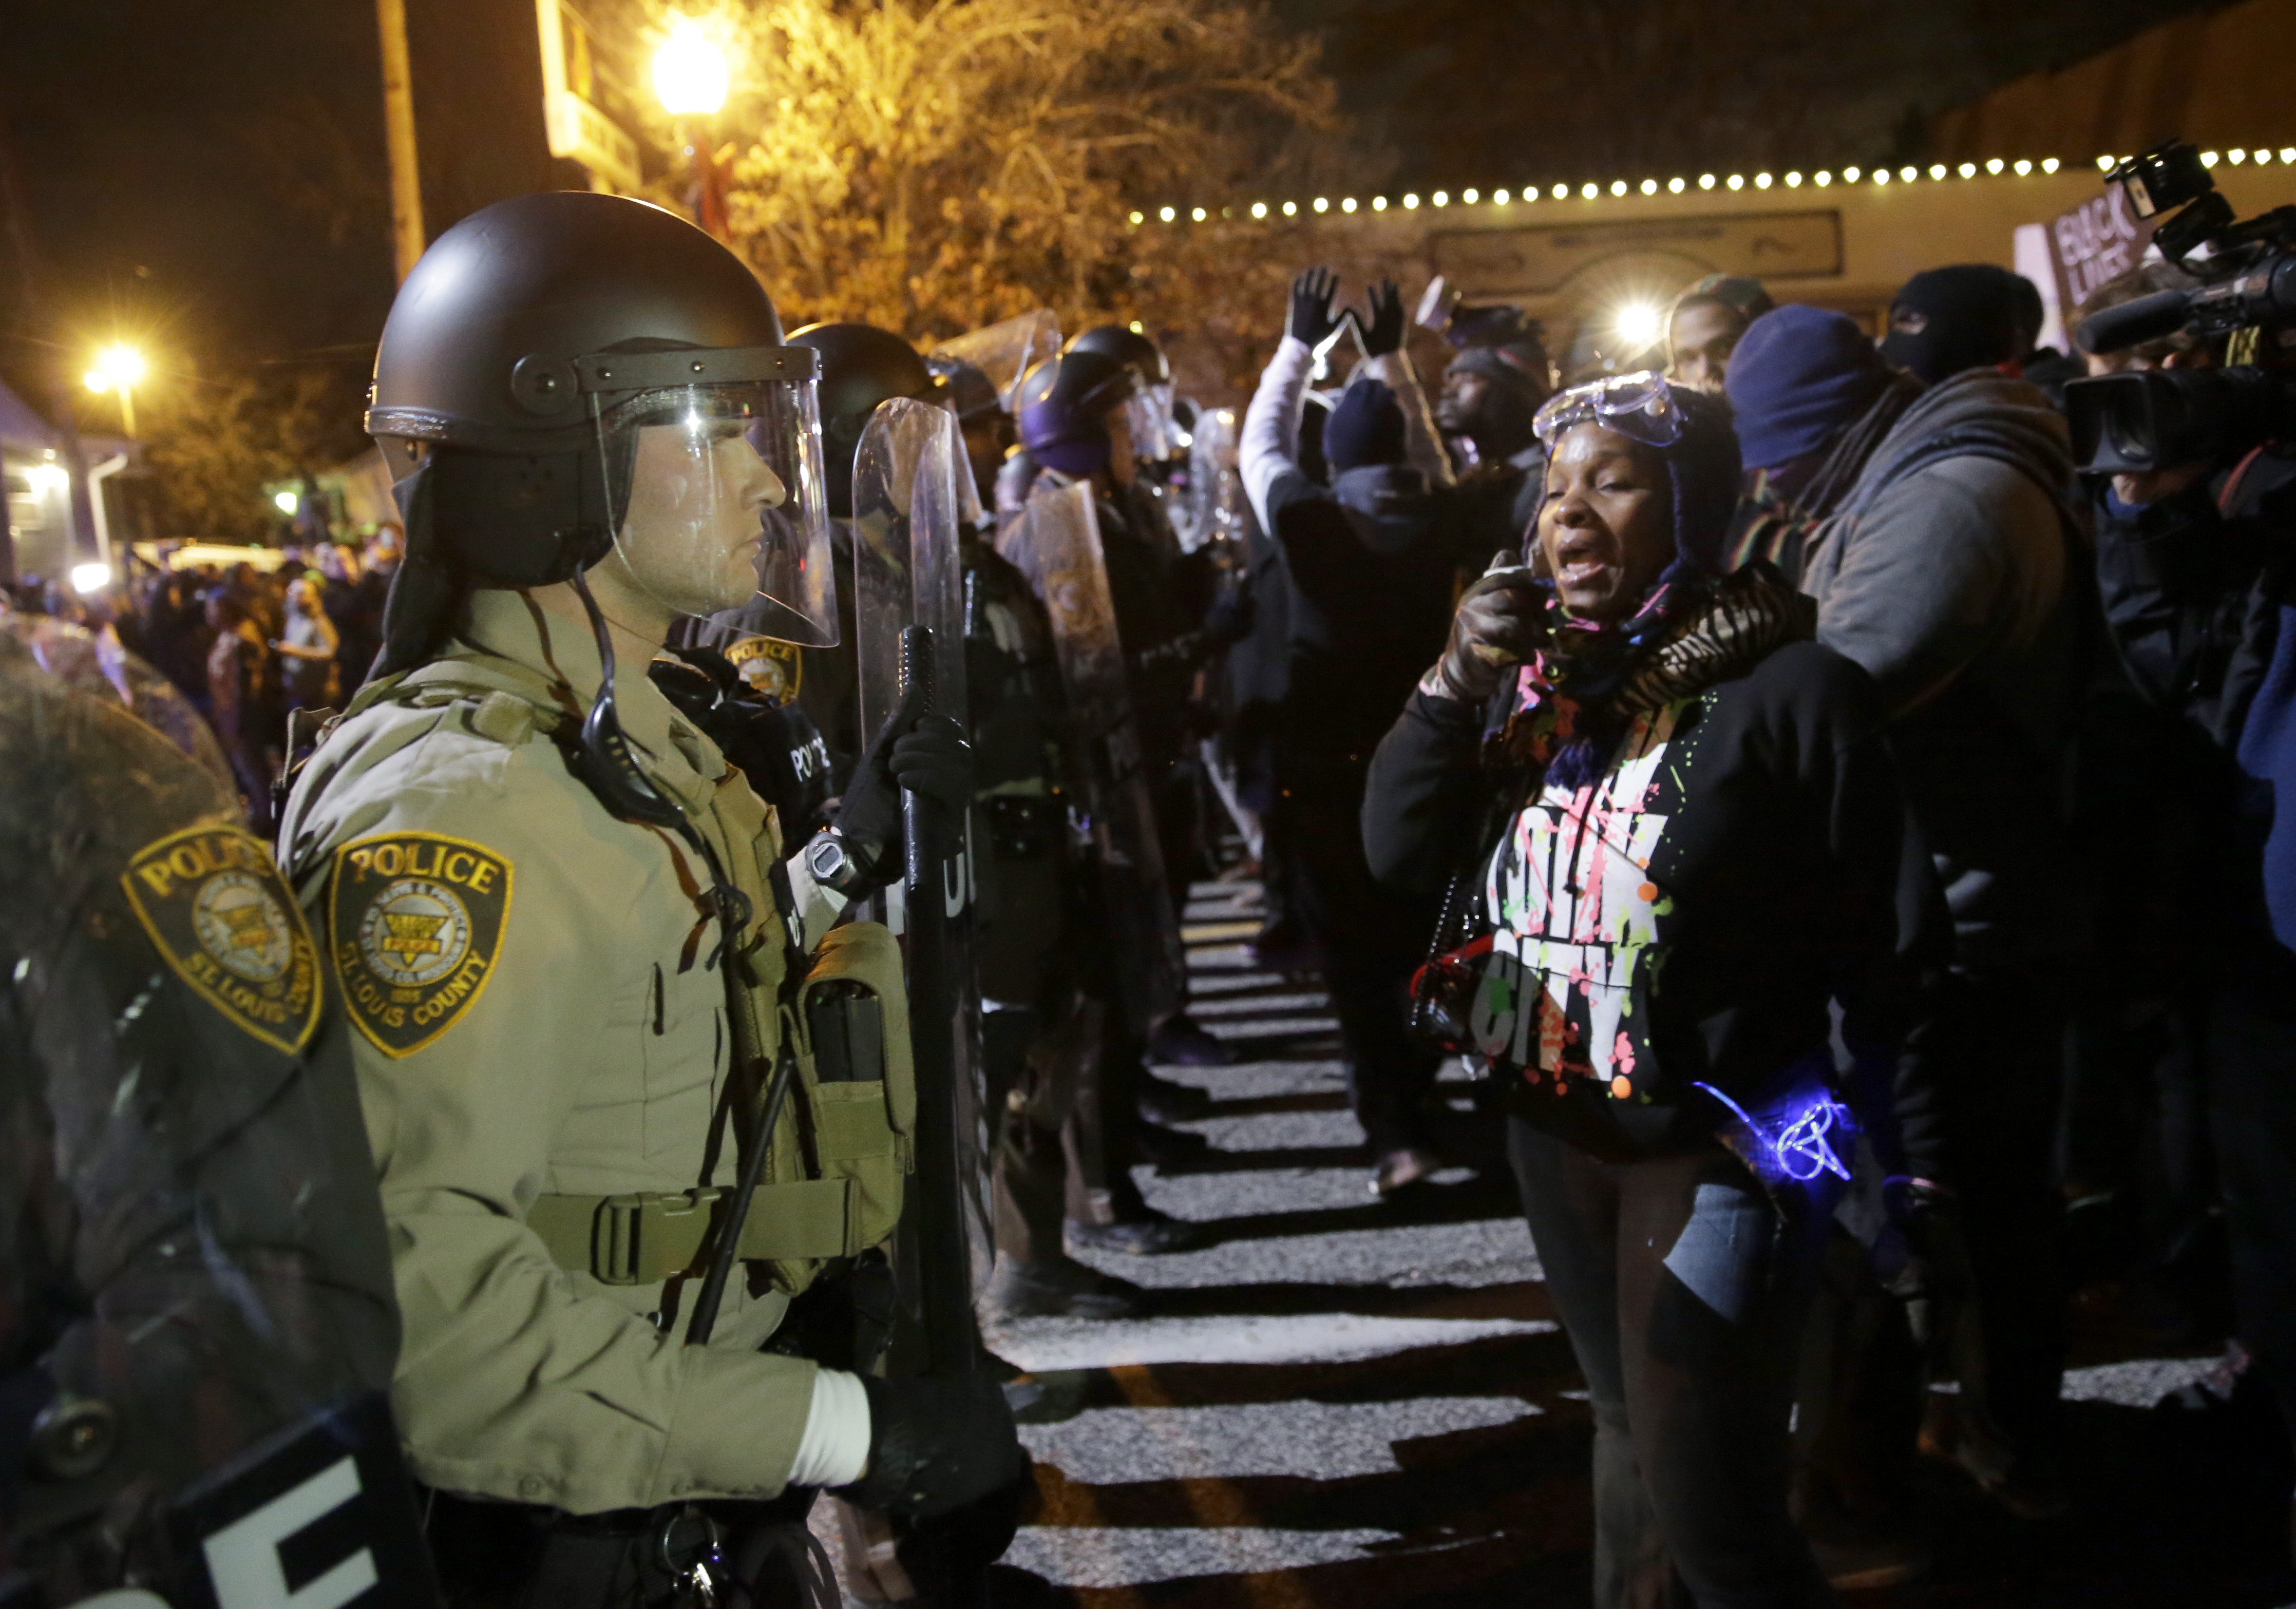 Ferguson: African-Americans Are Responsible for Creating Real Change in the US